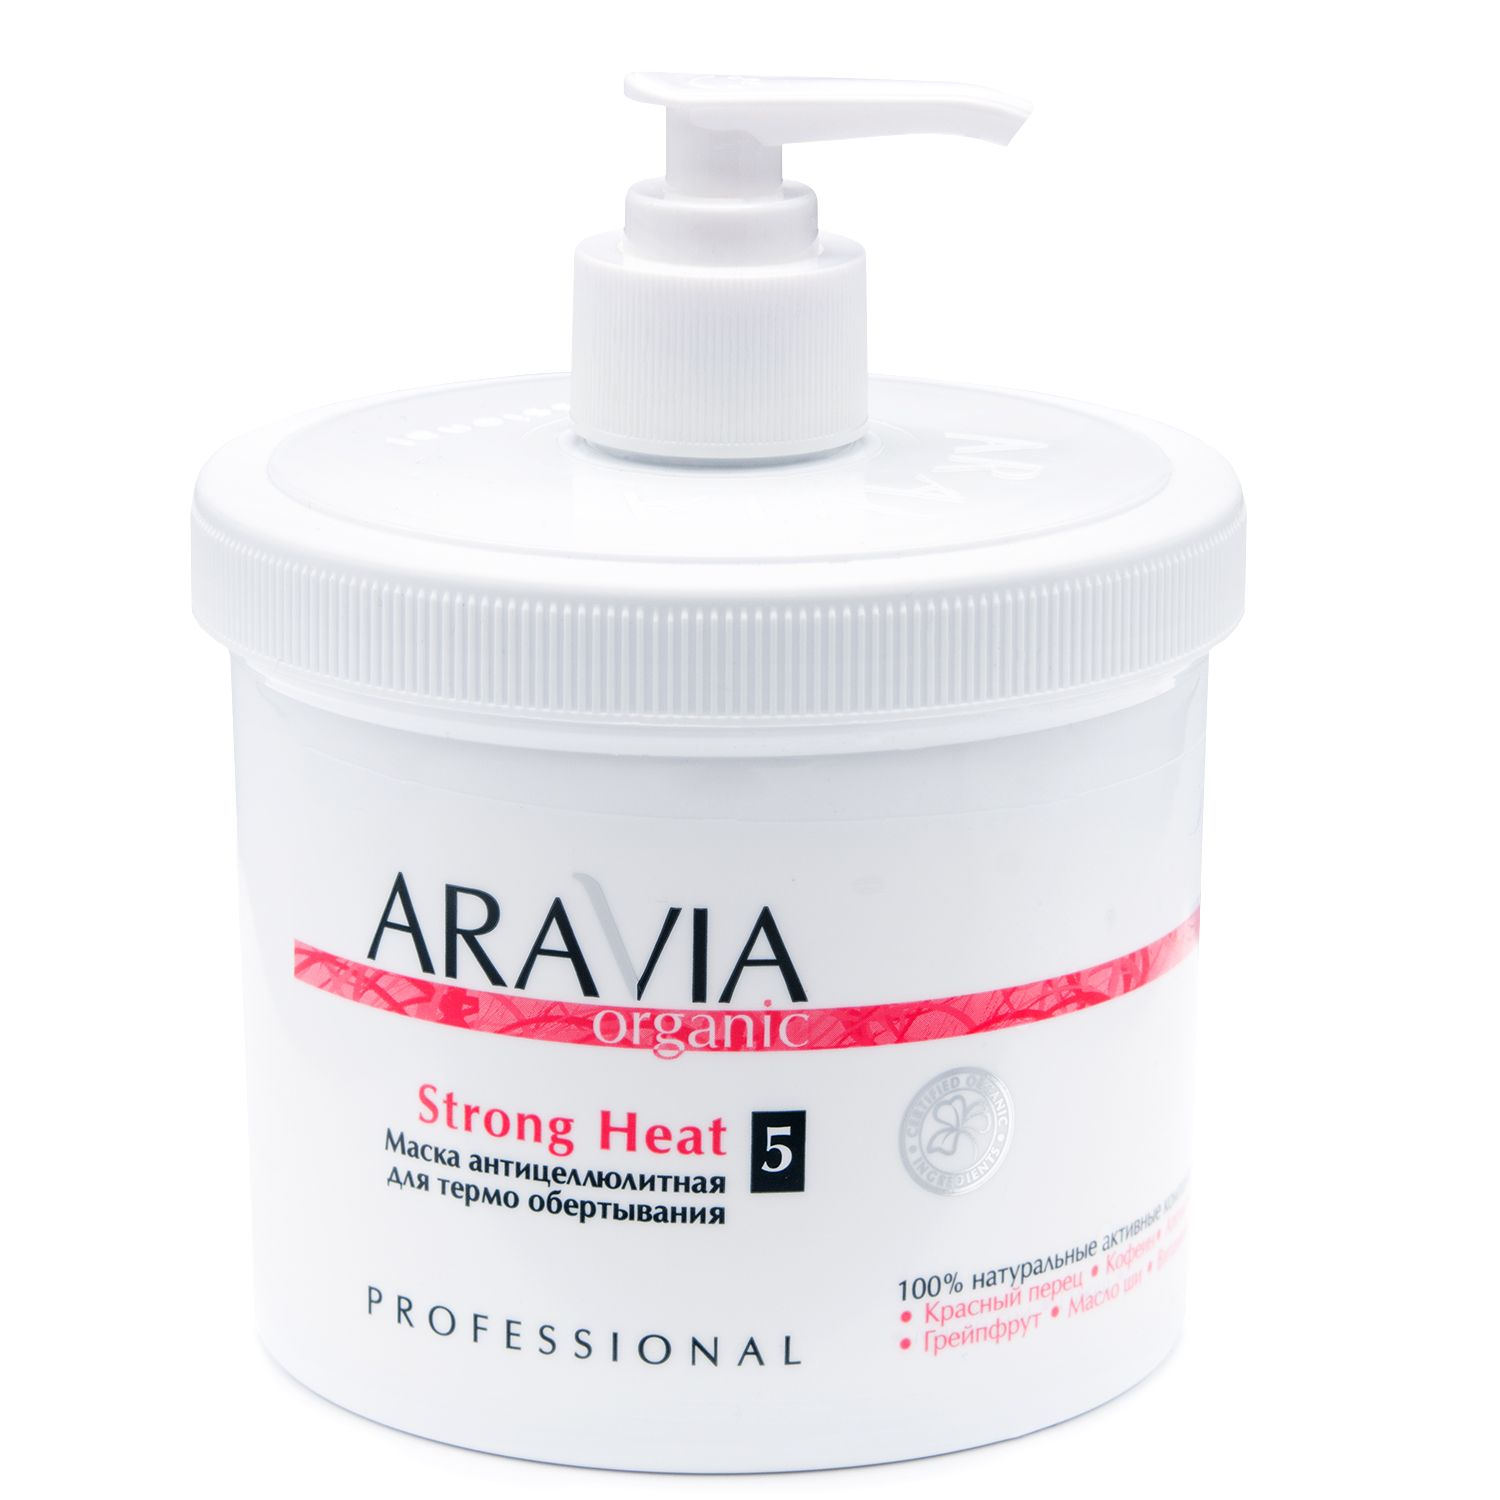 Mask антицеллюлитная For Thermal Wrapping Strong Heat, 550 Ml, Aravia Organic